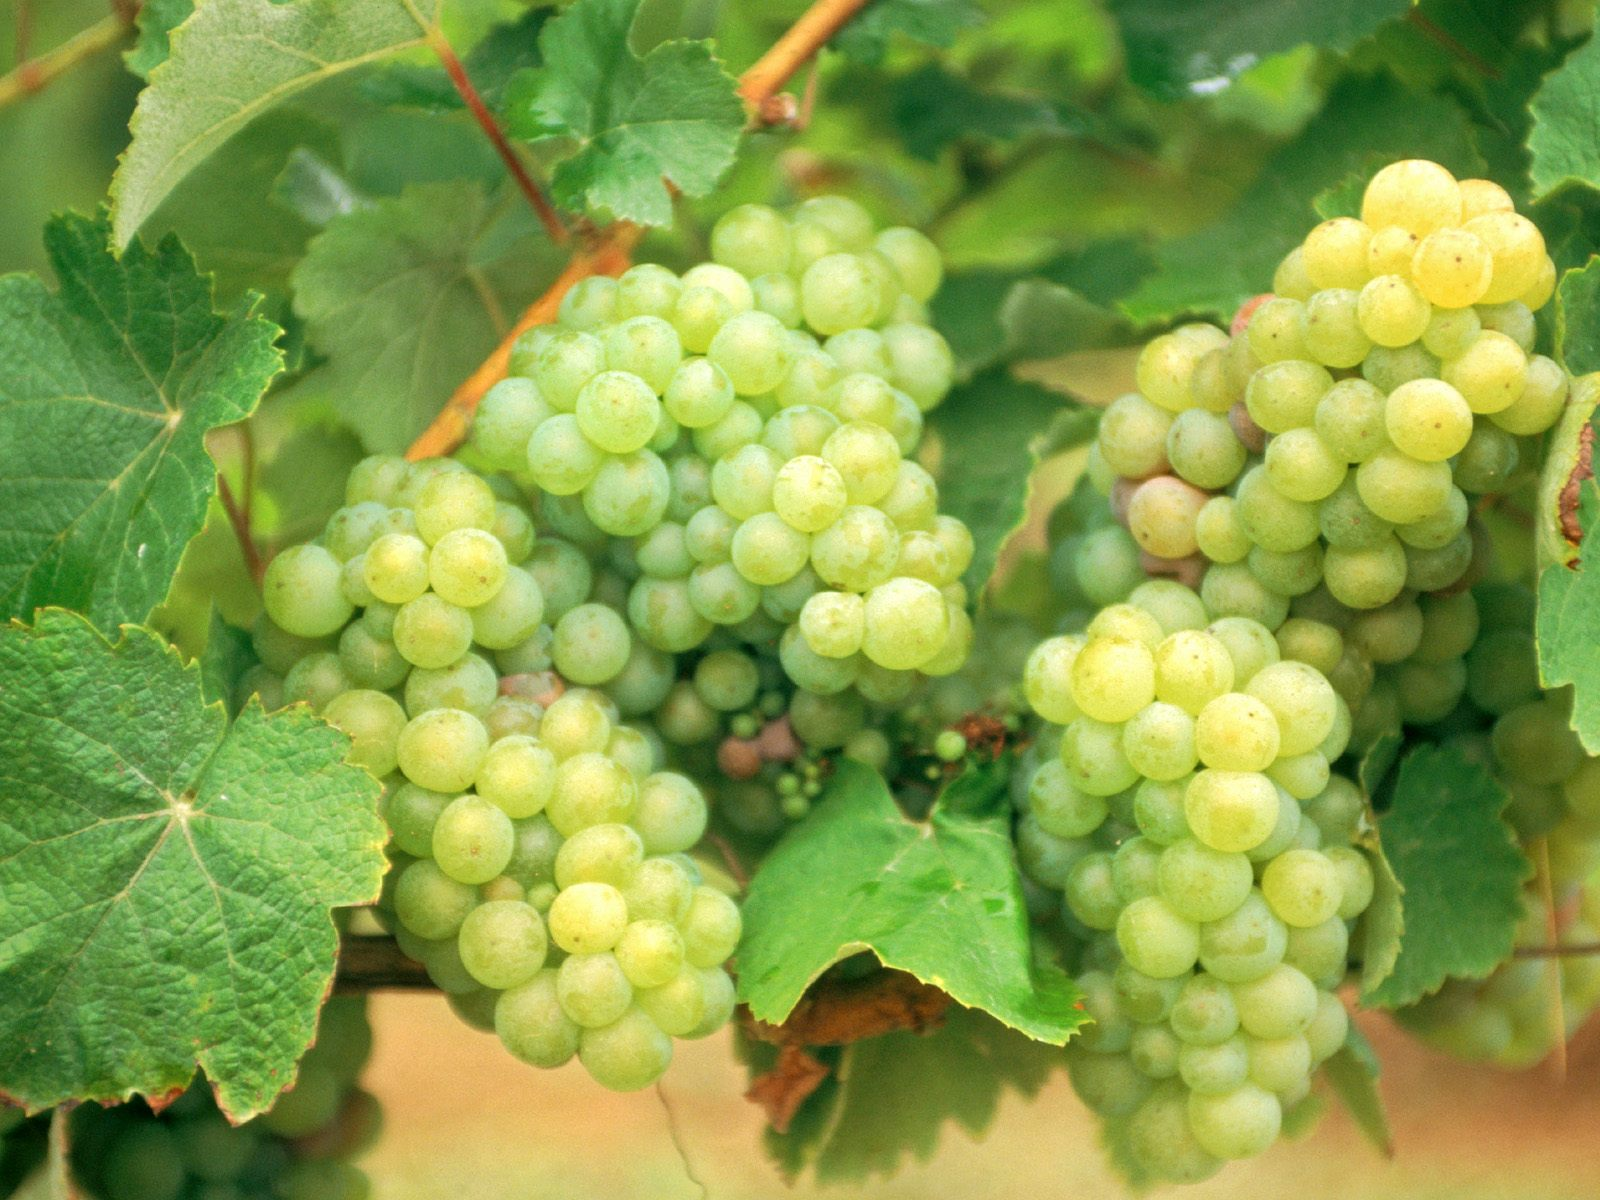 Grapes High Quality Wallpapers Free Download - Wallpapers ...